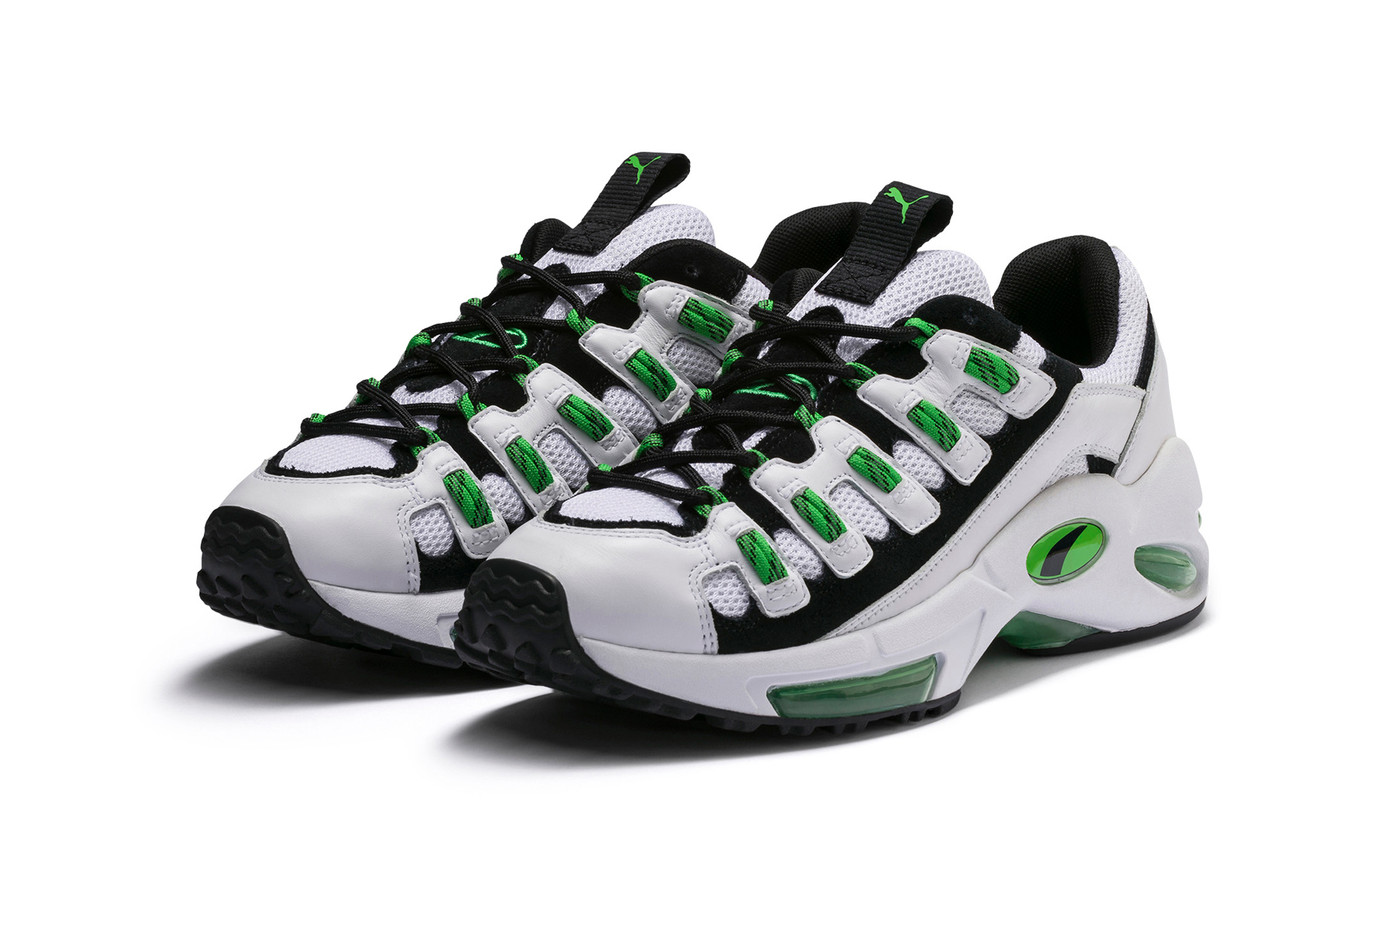 The PUMA CELL Endura Is the Latest  90s Sneaker to Get a Revival ... c1d37334c16b